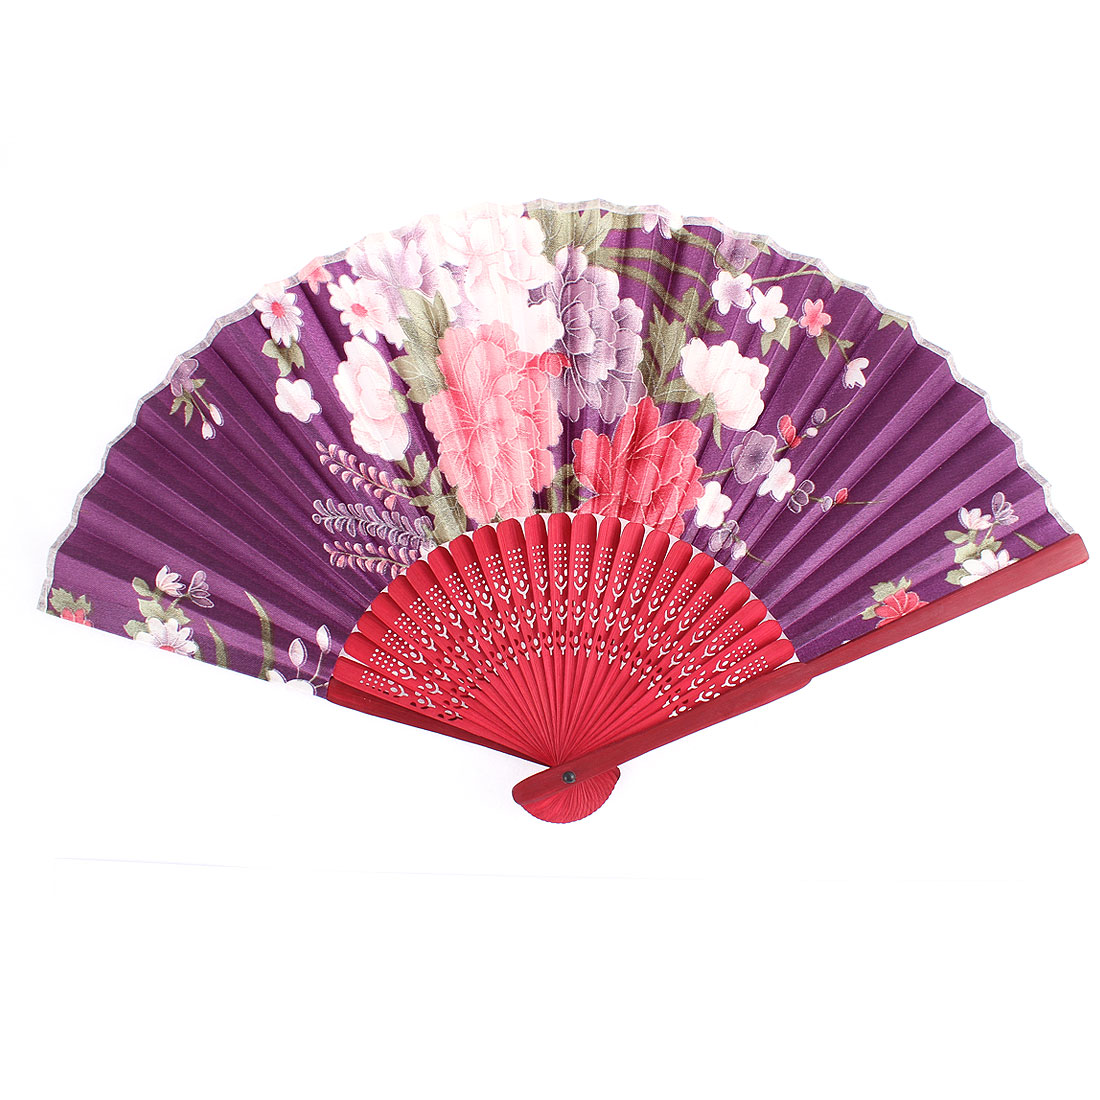 Bamboo Frame Flower Pattern Party Wedding Fabric Handheld Folding Fan Red